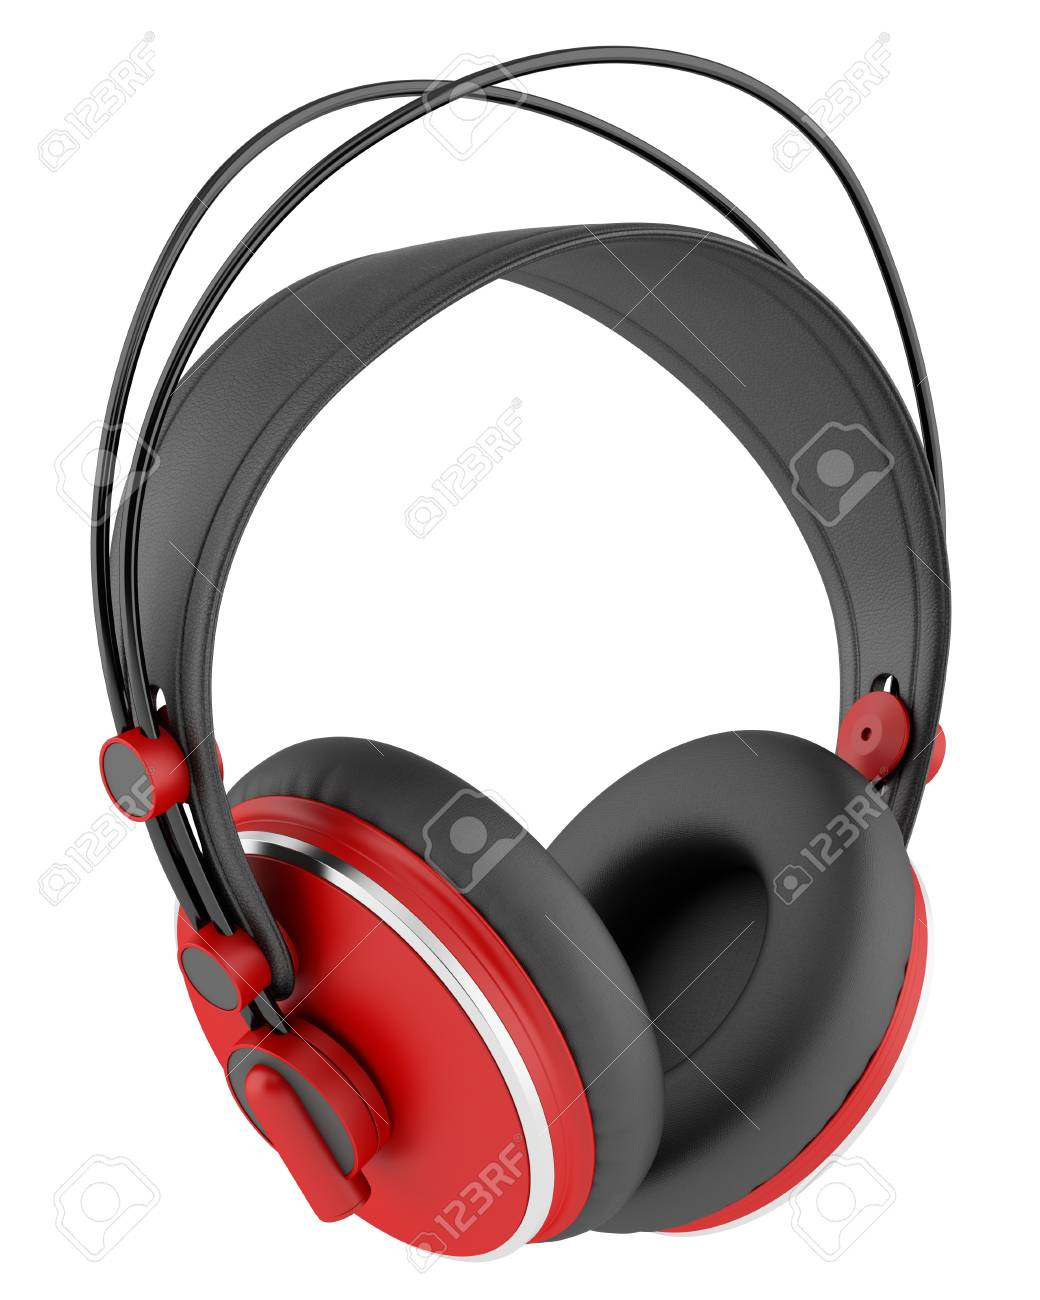 red and black wireless headphones isolated on white background Stock Photo - 21060319